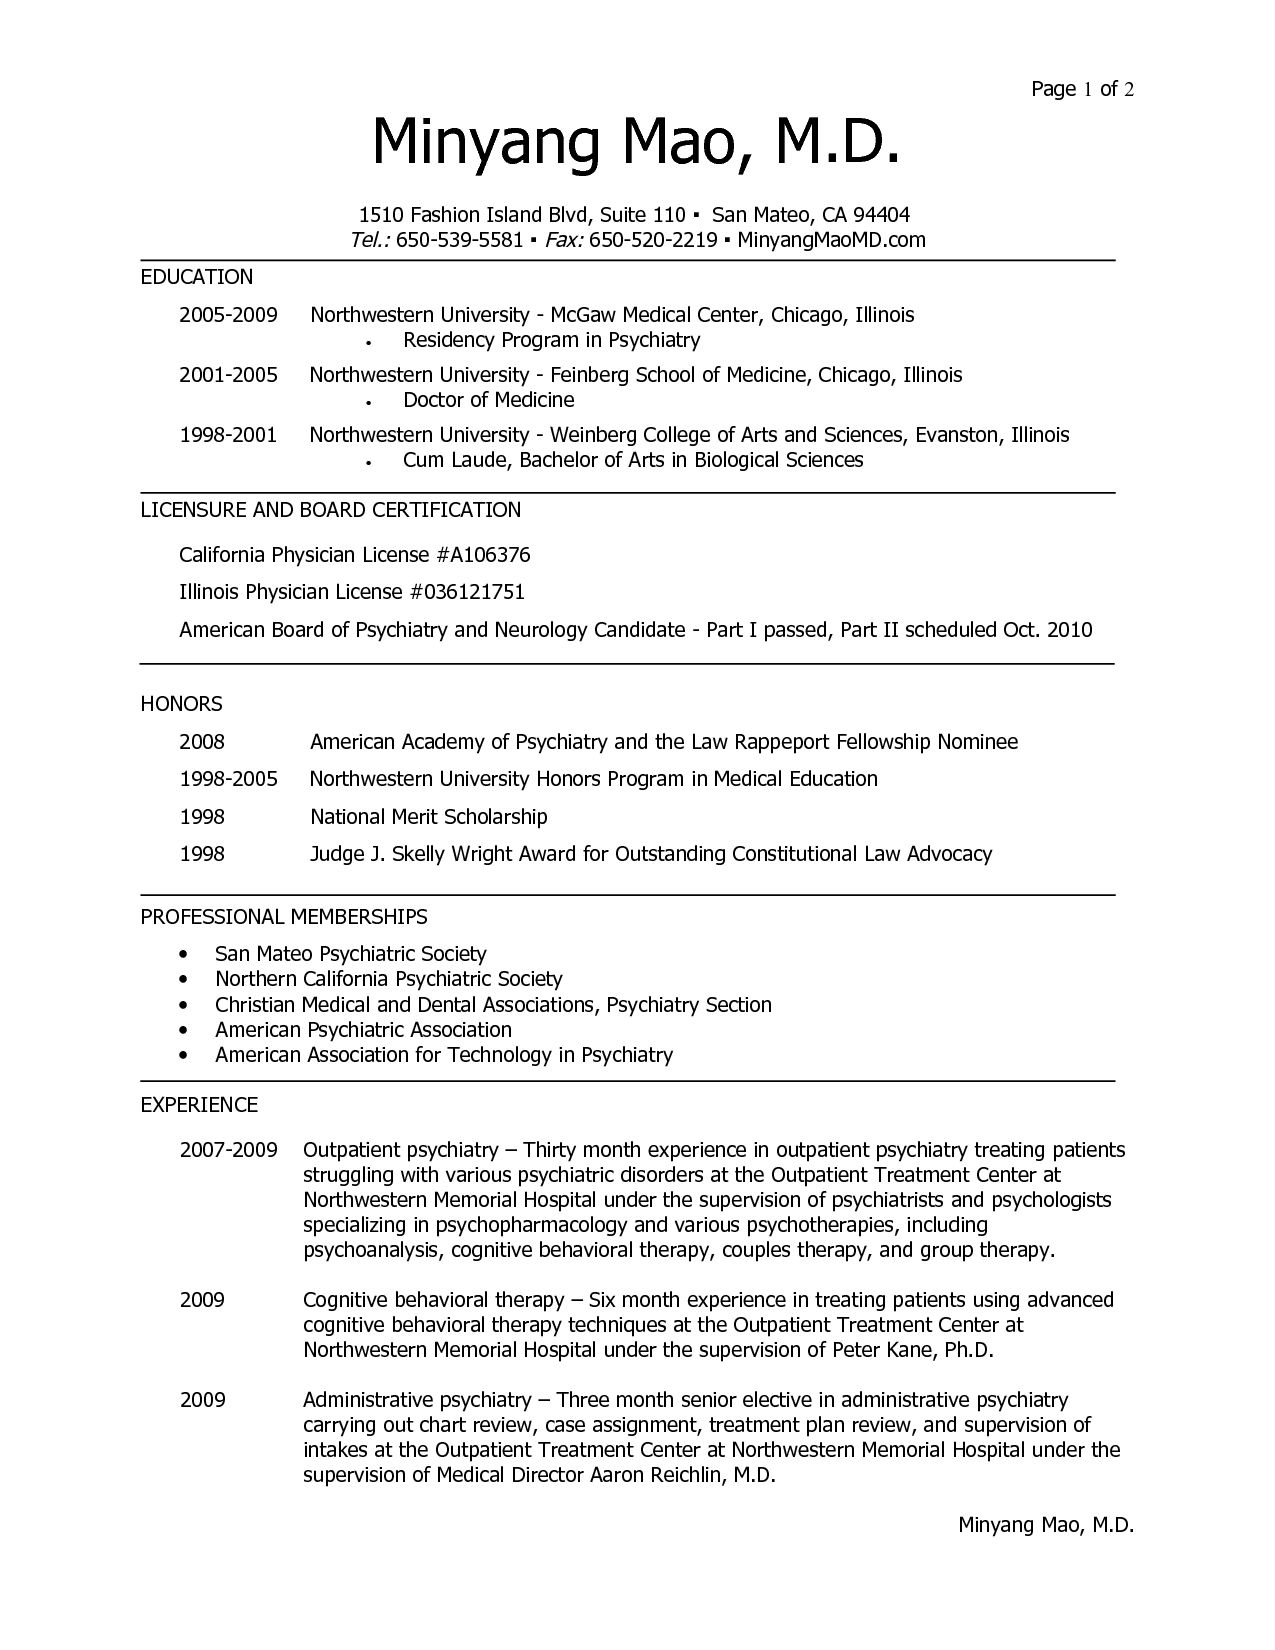 Objective For Graduate School Resume Example Resume Graduate School  Application   Templates  Grad School Resume Examples